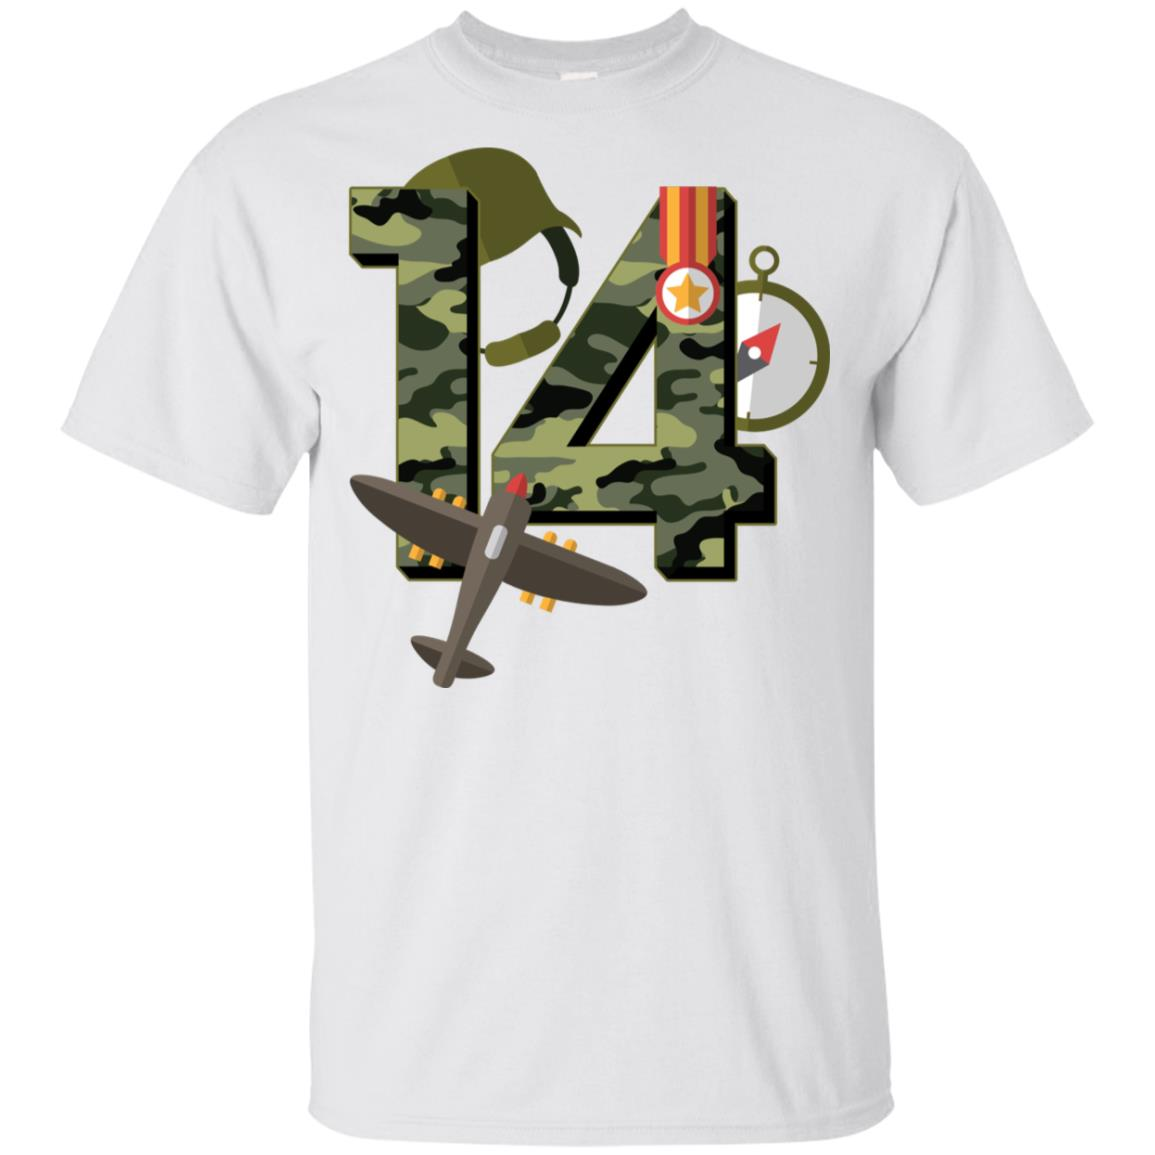 14Birthday Camouflage Army Soldier 14 Ye Youth Short Sleeve